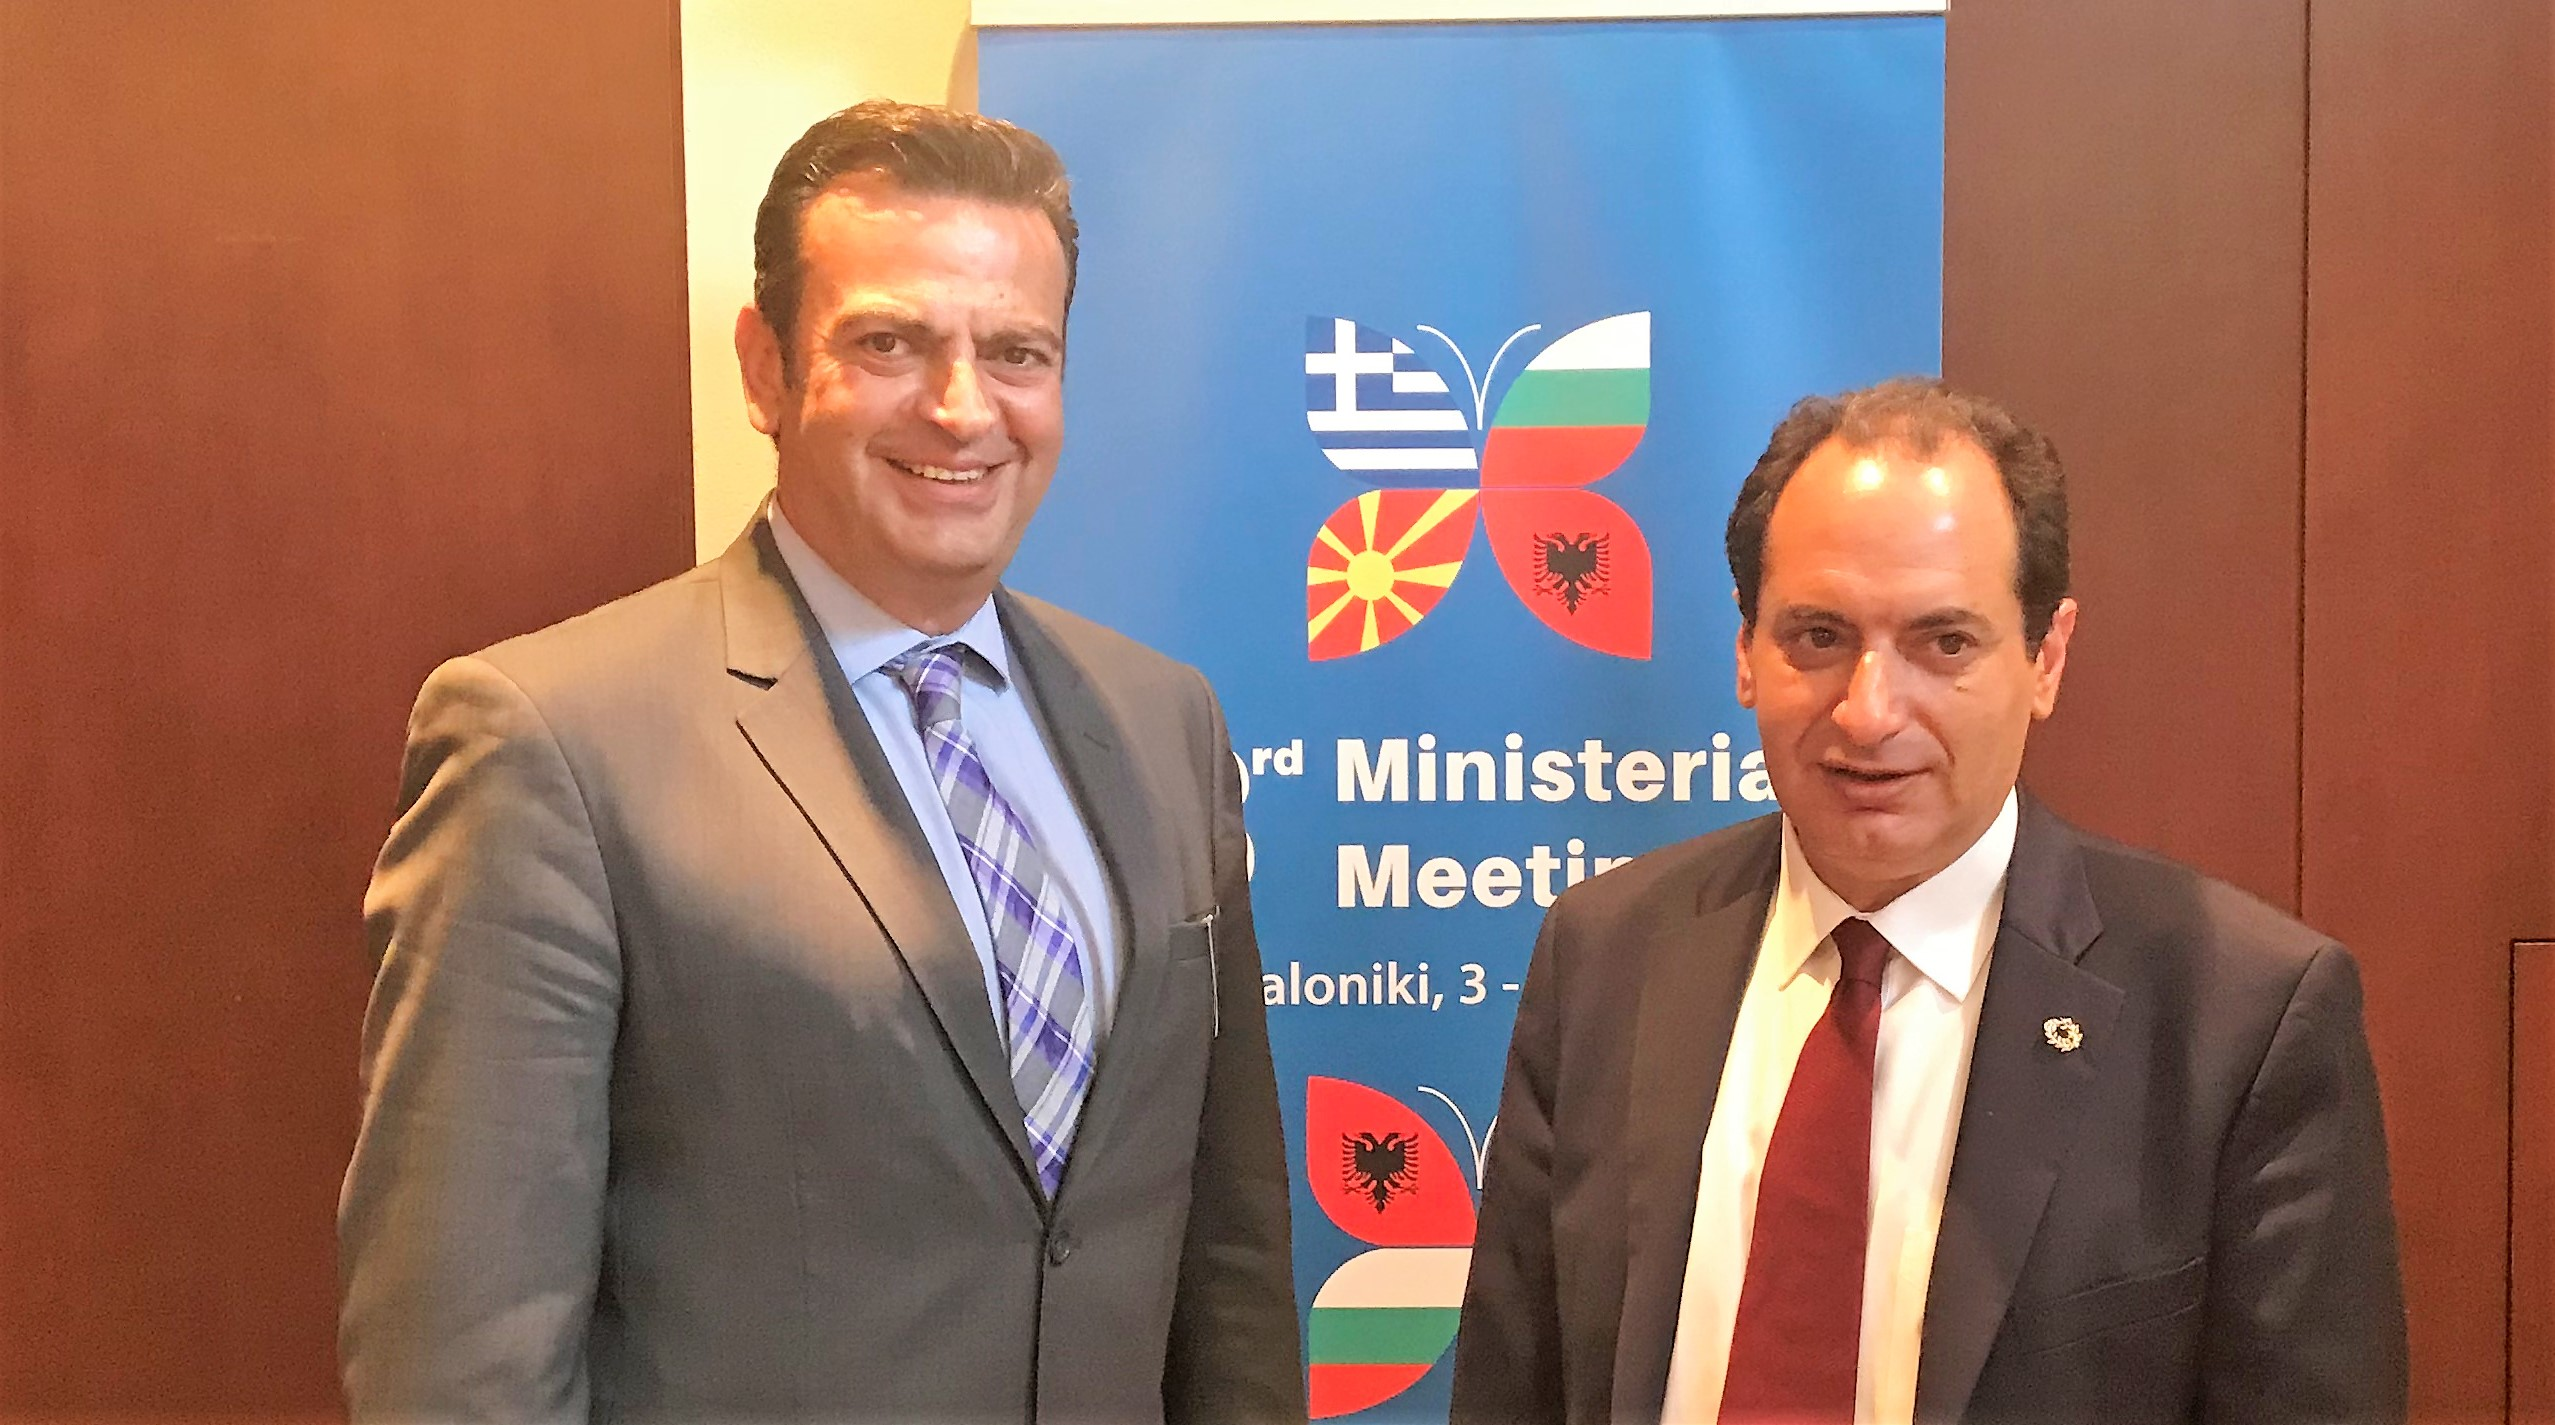 IBNA/Interview with Ch. Spirtzis: Greece uses its geopolitical position to become an intermodal transport hub